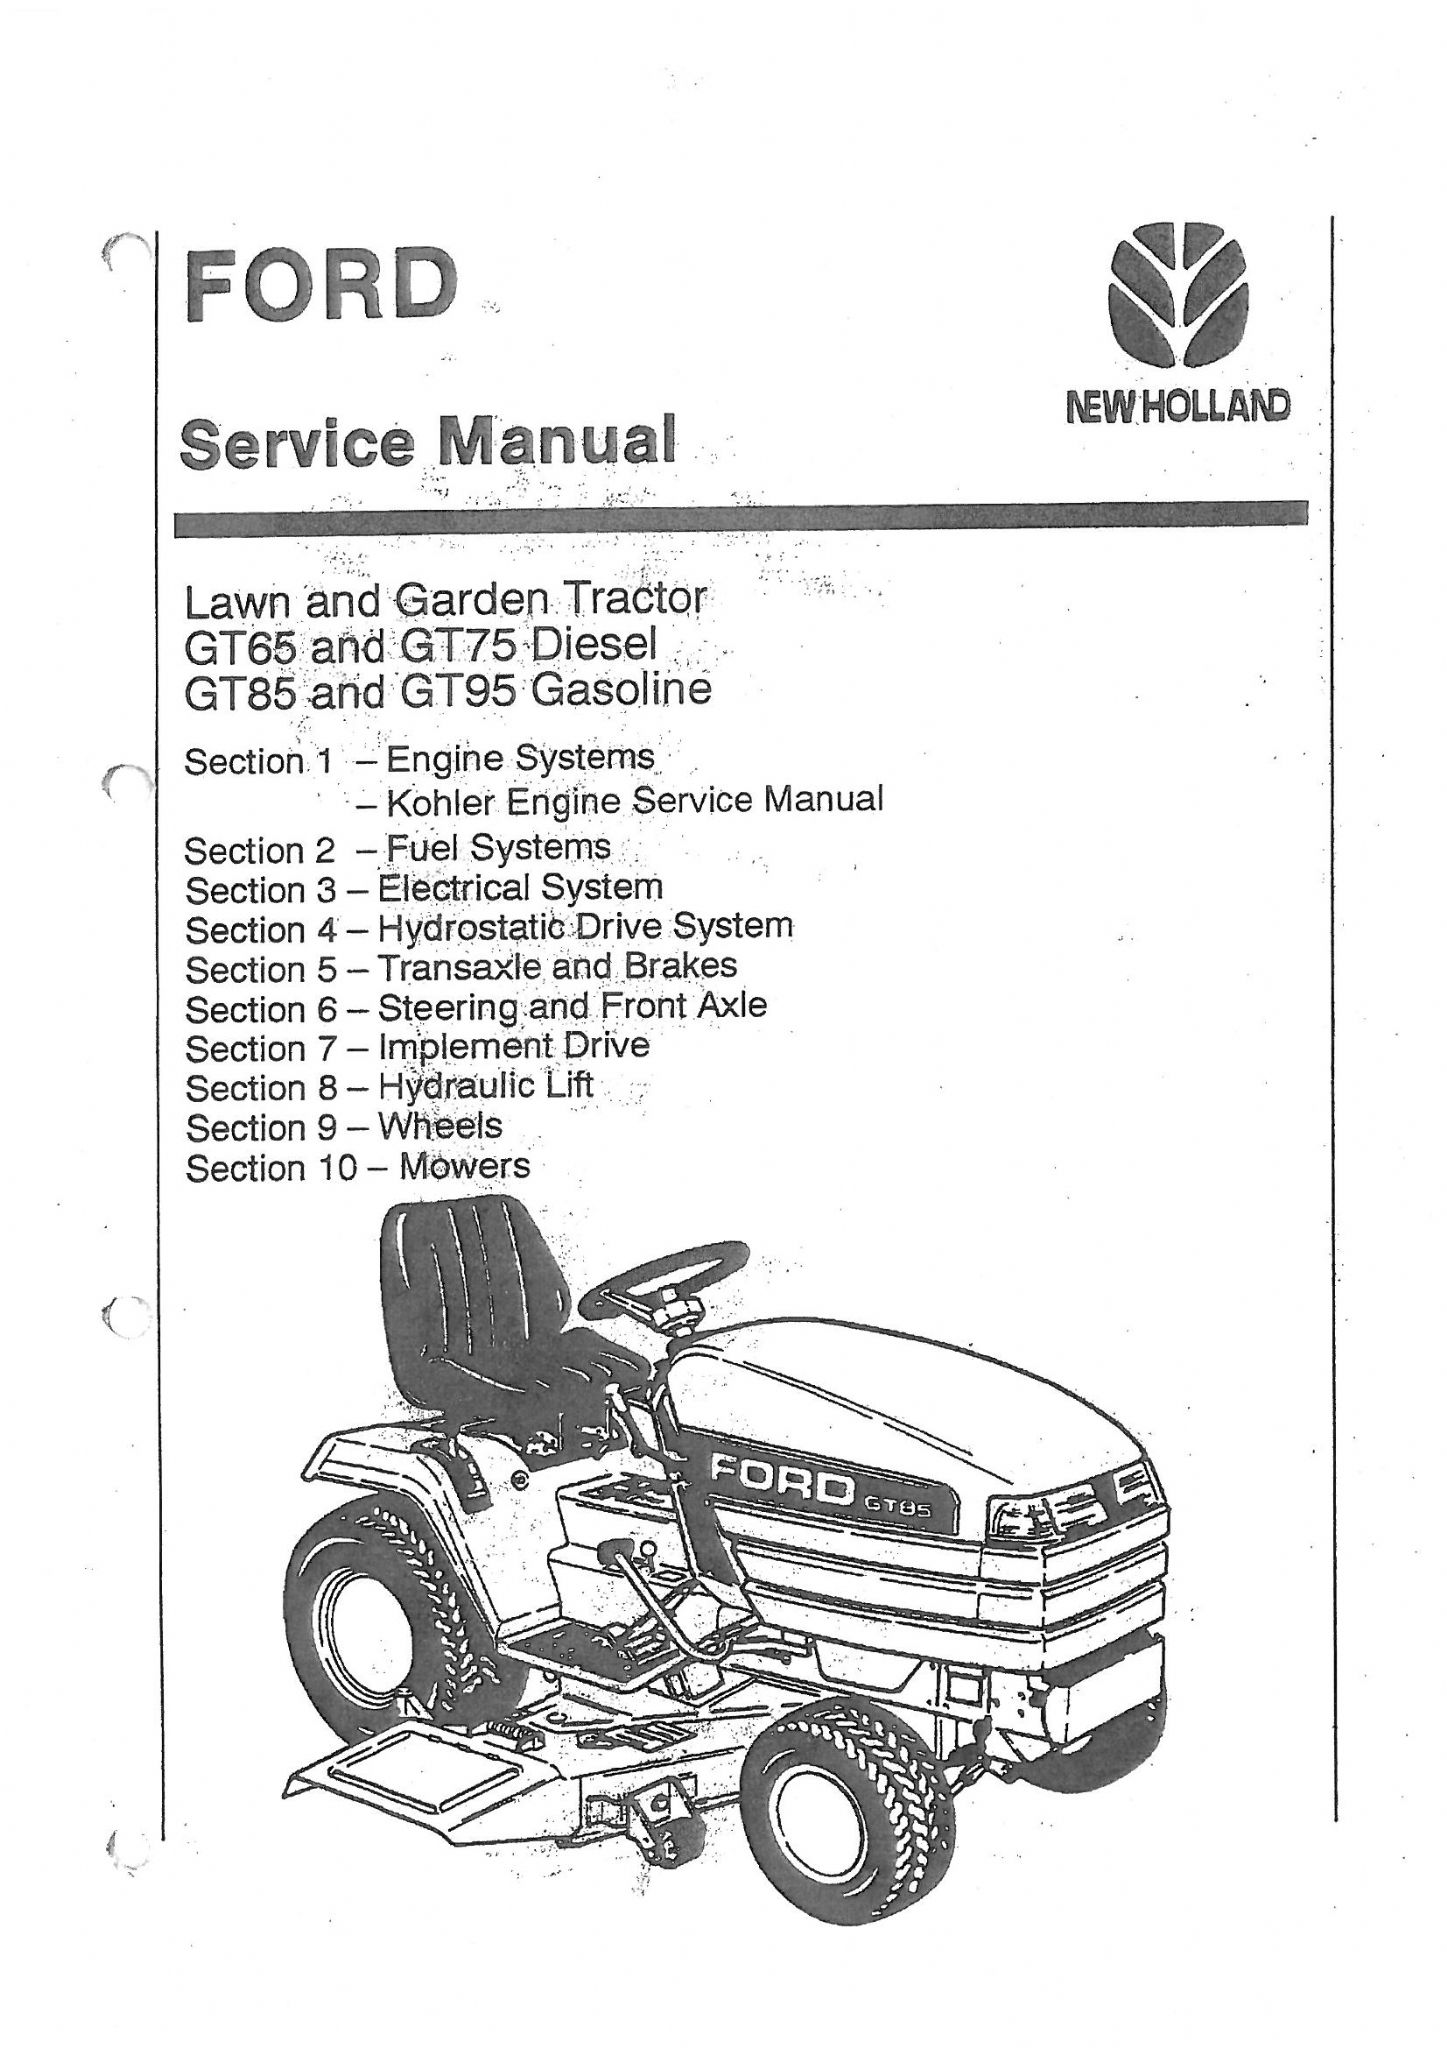 Ford Garden and Lawn Tractor GT65 GT75 GT85 GT95 Workshop